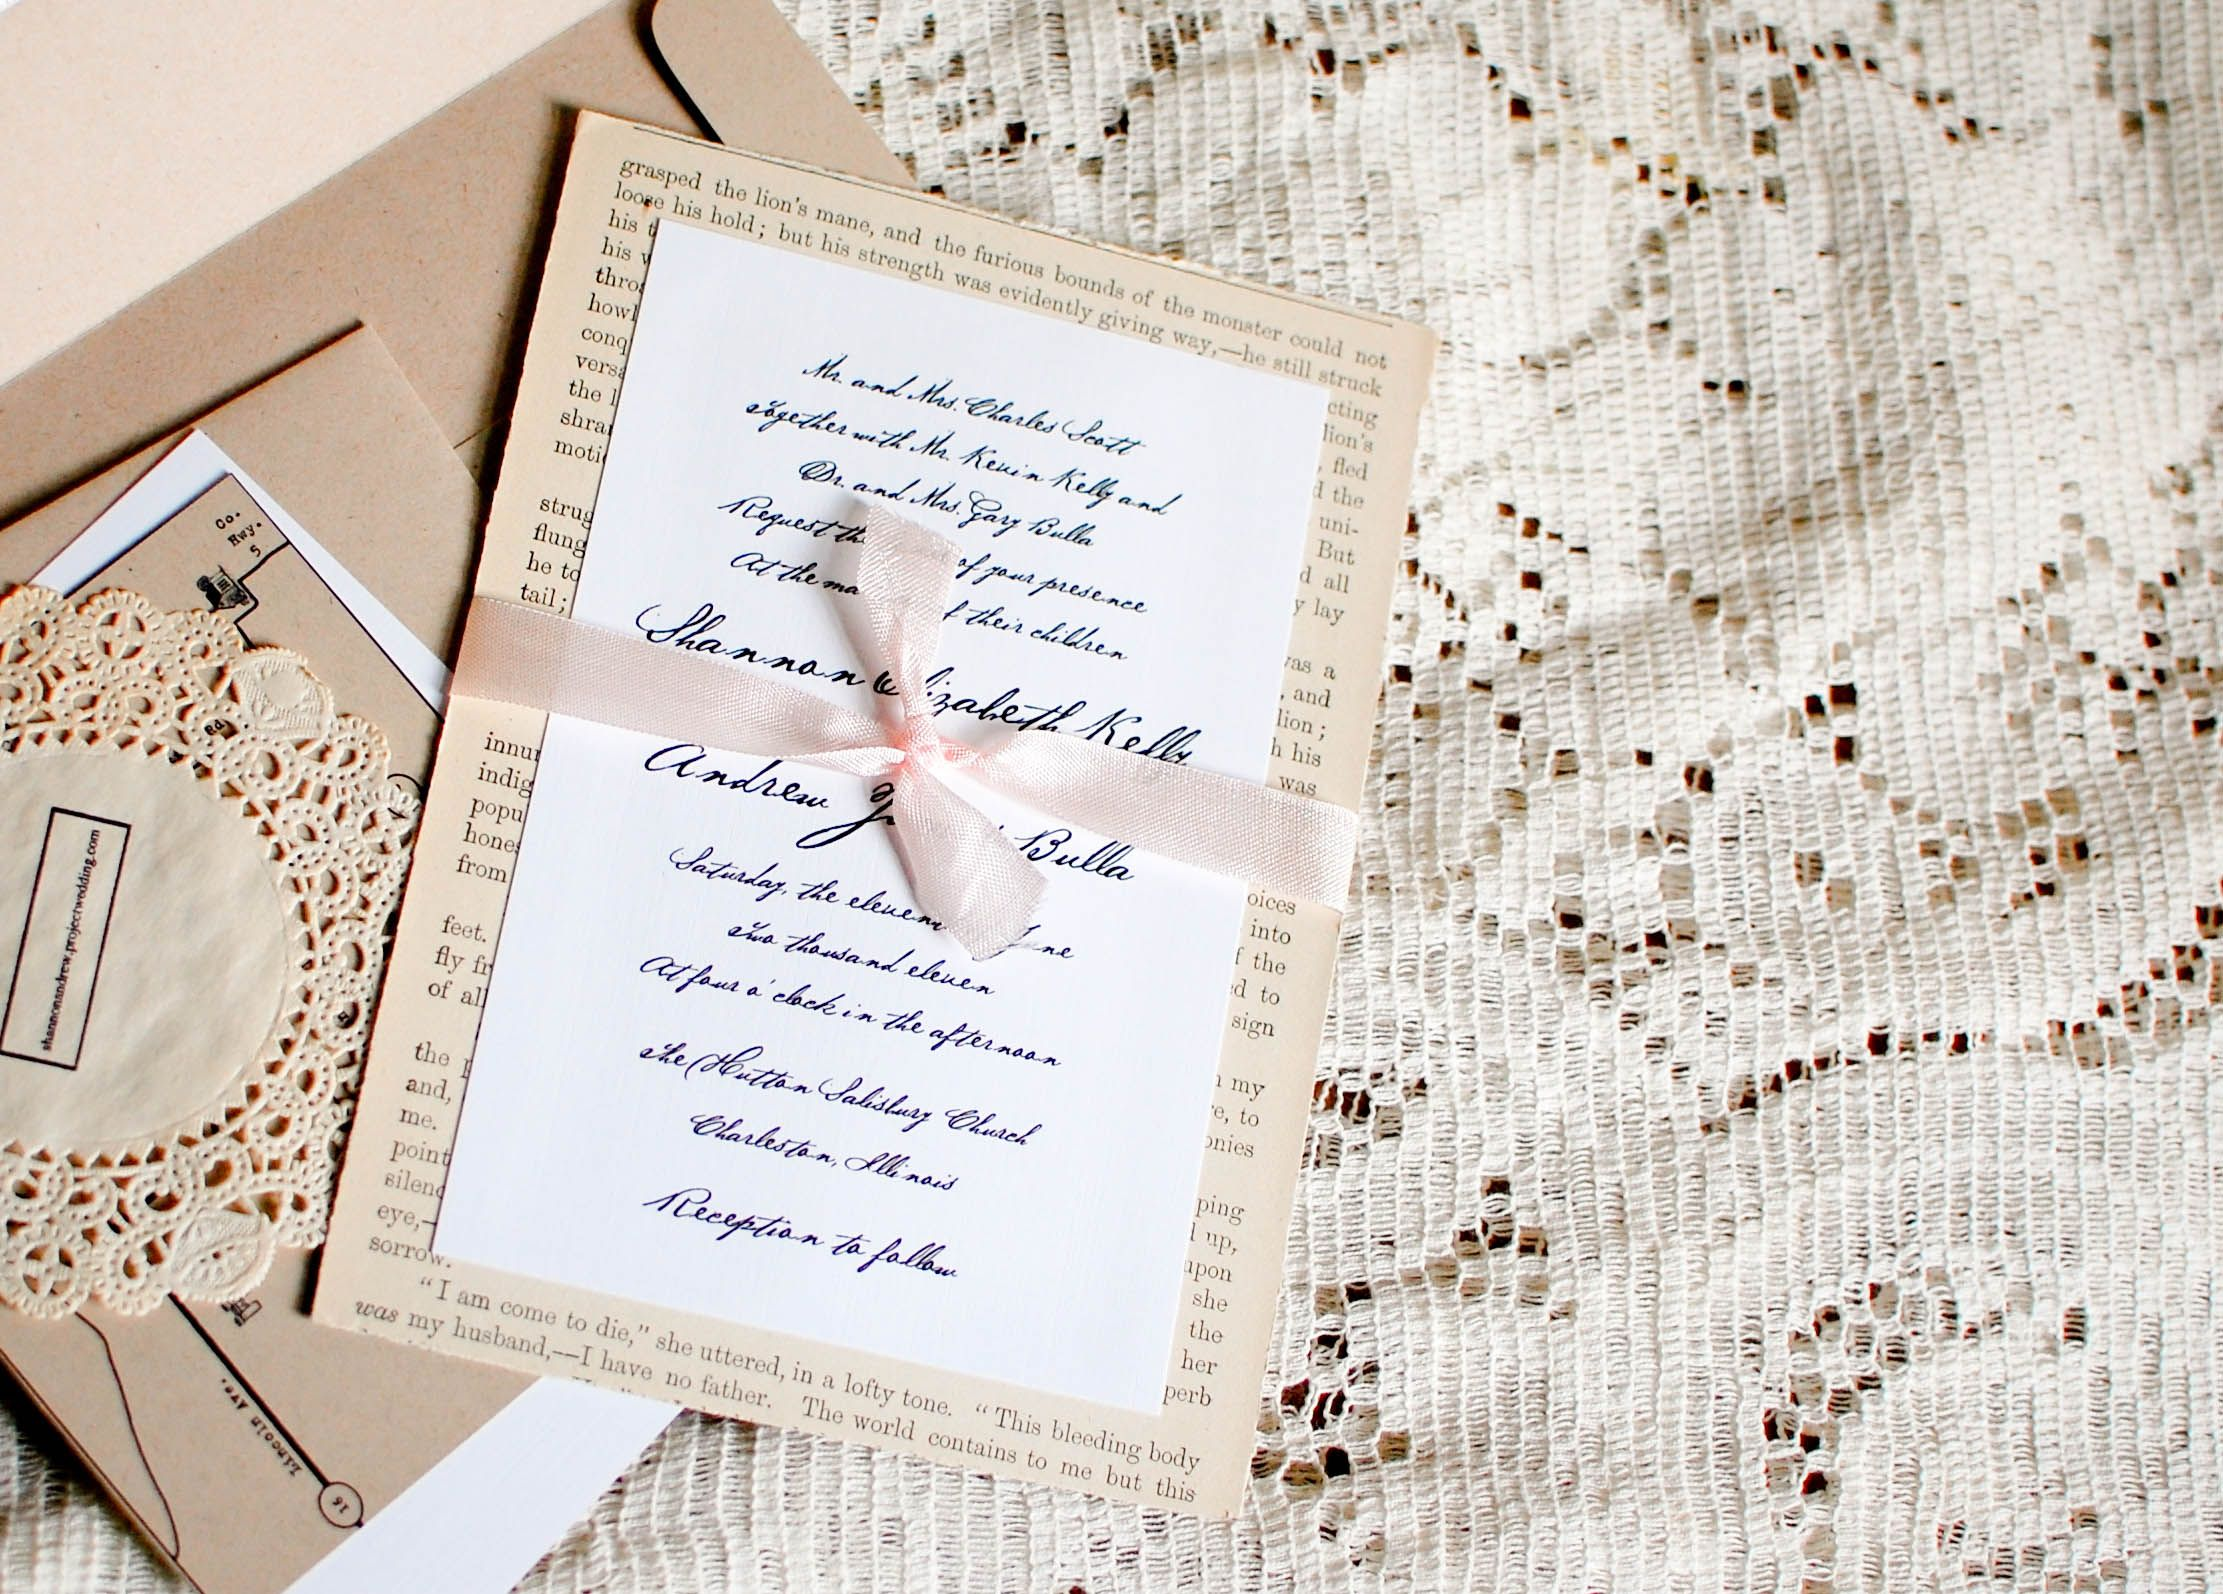 diy wedding invites diy wedding invitations kits 17 best images about happily ever after invitations on pinterest on vintage wedding invites diy